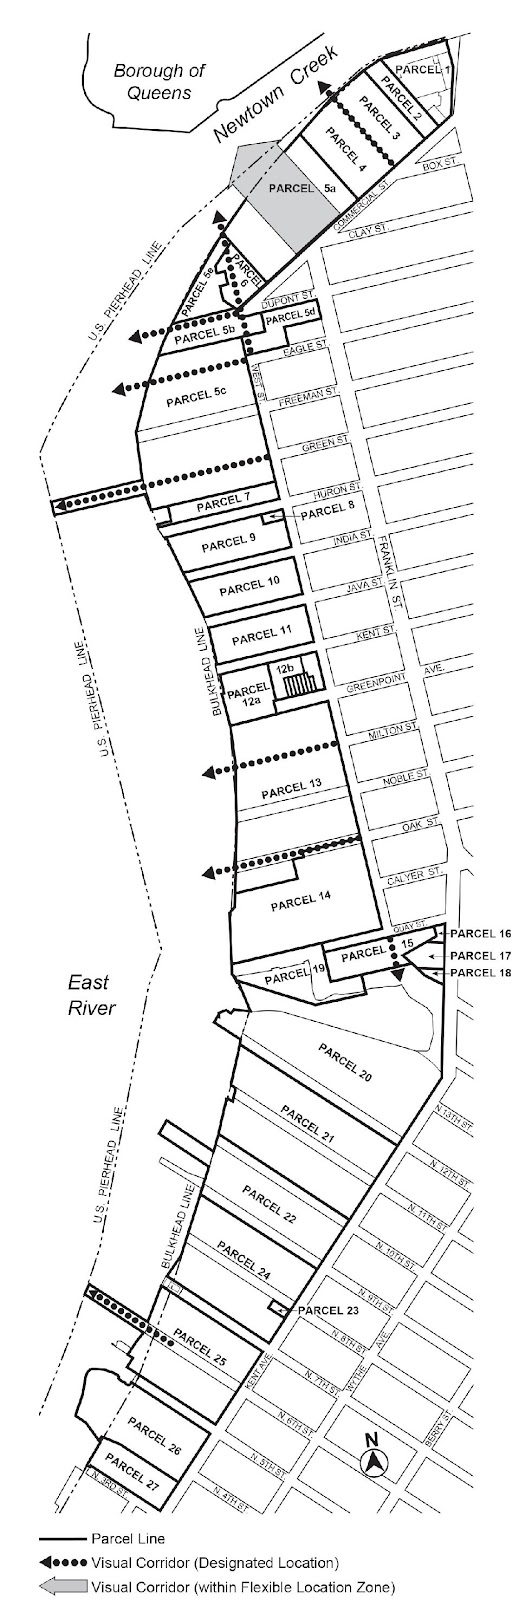 Zoning Resolutions 62-931.4